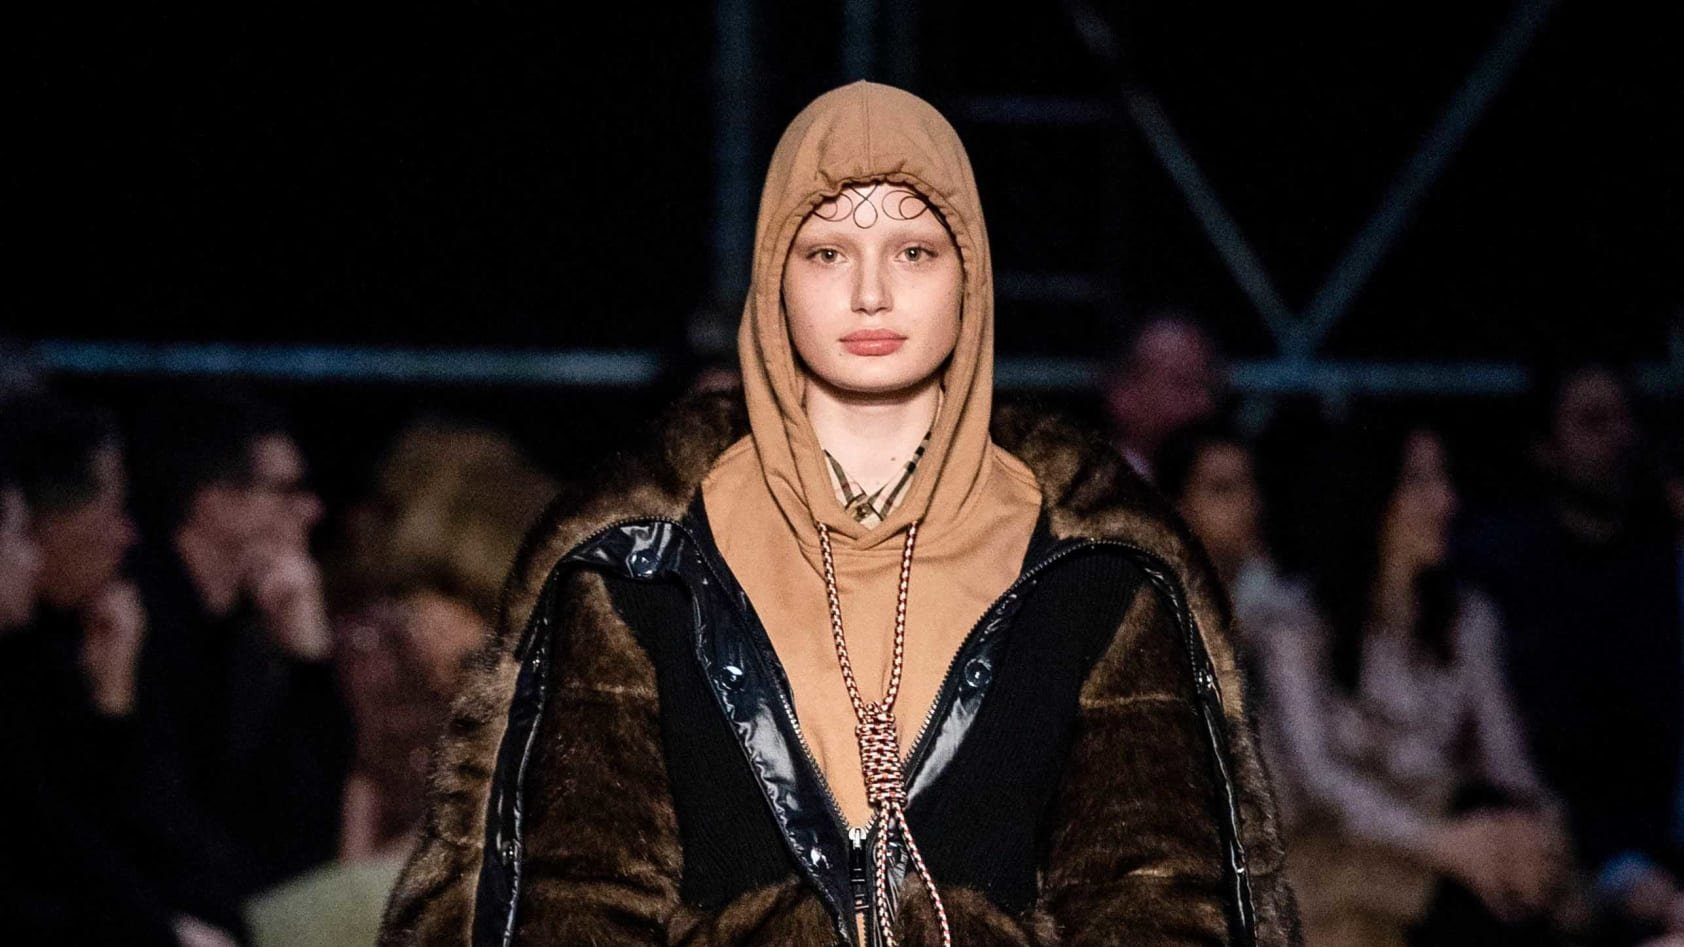 Fashion brand Burberry has apologized for showcasing a hoodie that featured a noose around the neck during its show at London Fashion Week.